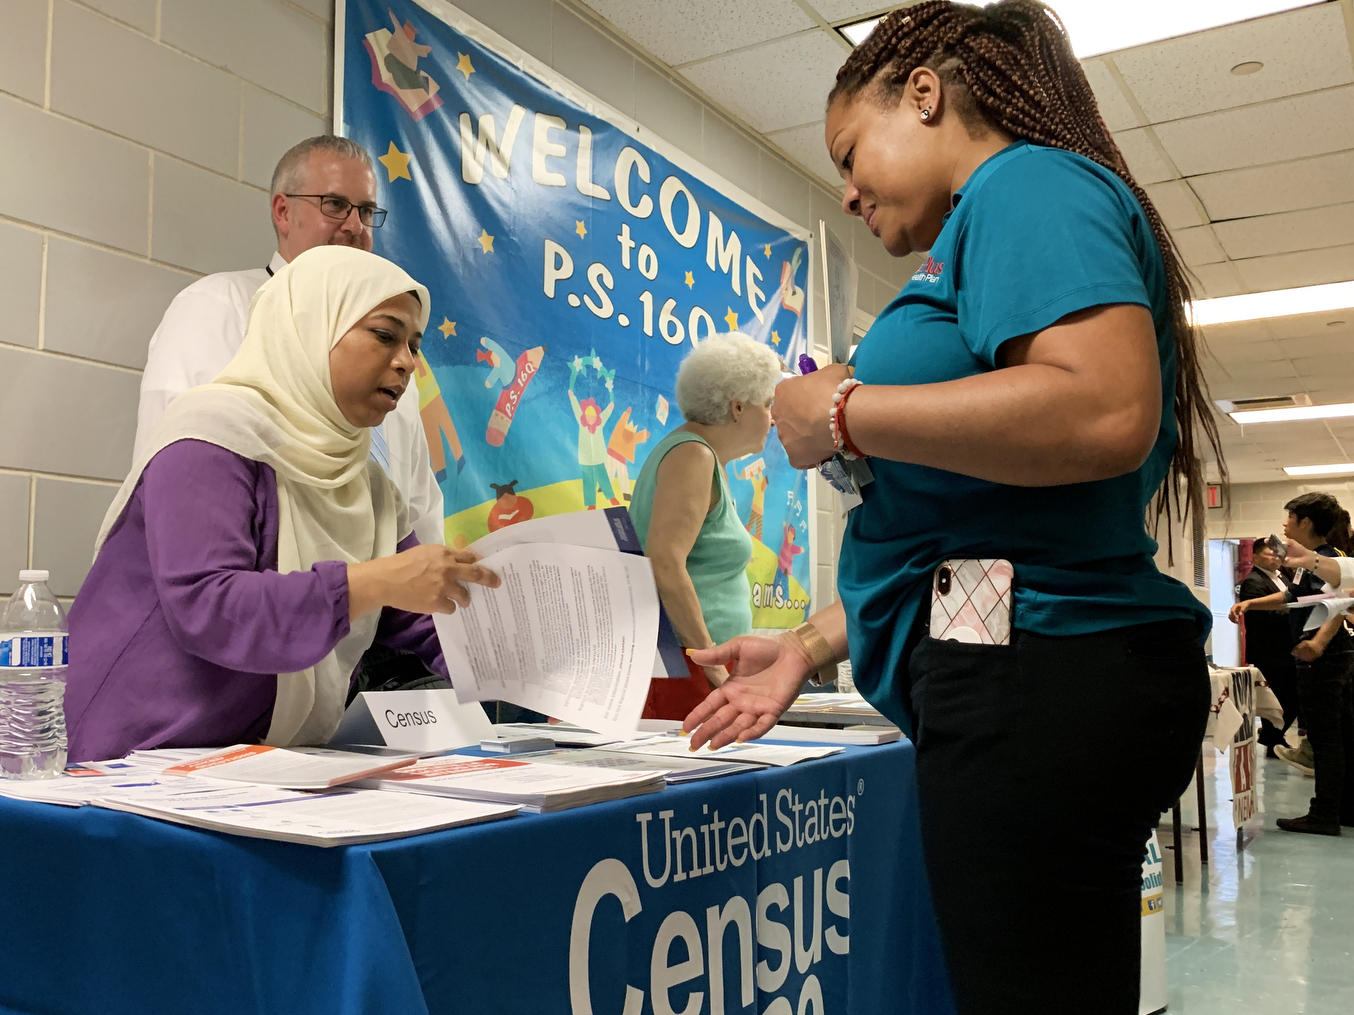 A Half Million 2020 Census Jobs: Will They Be Filled In Time?